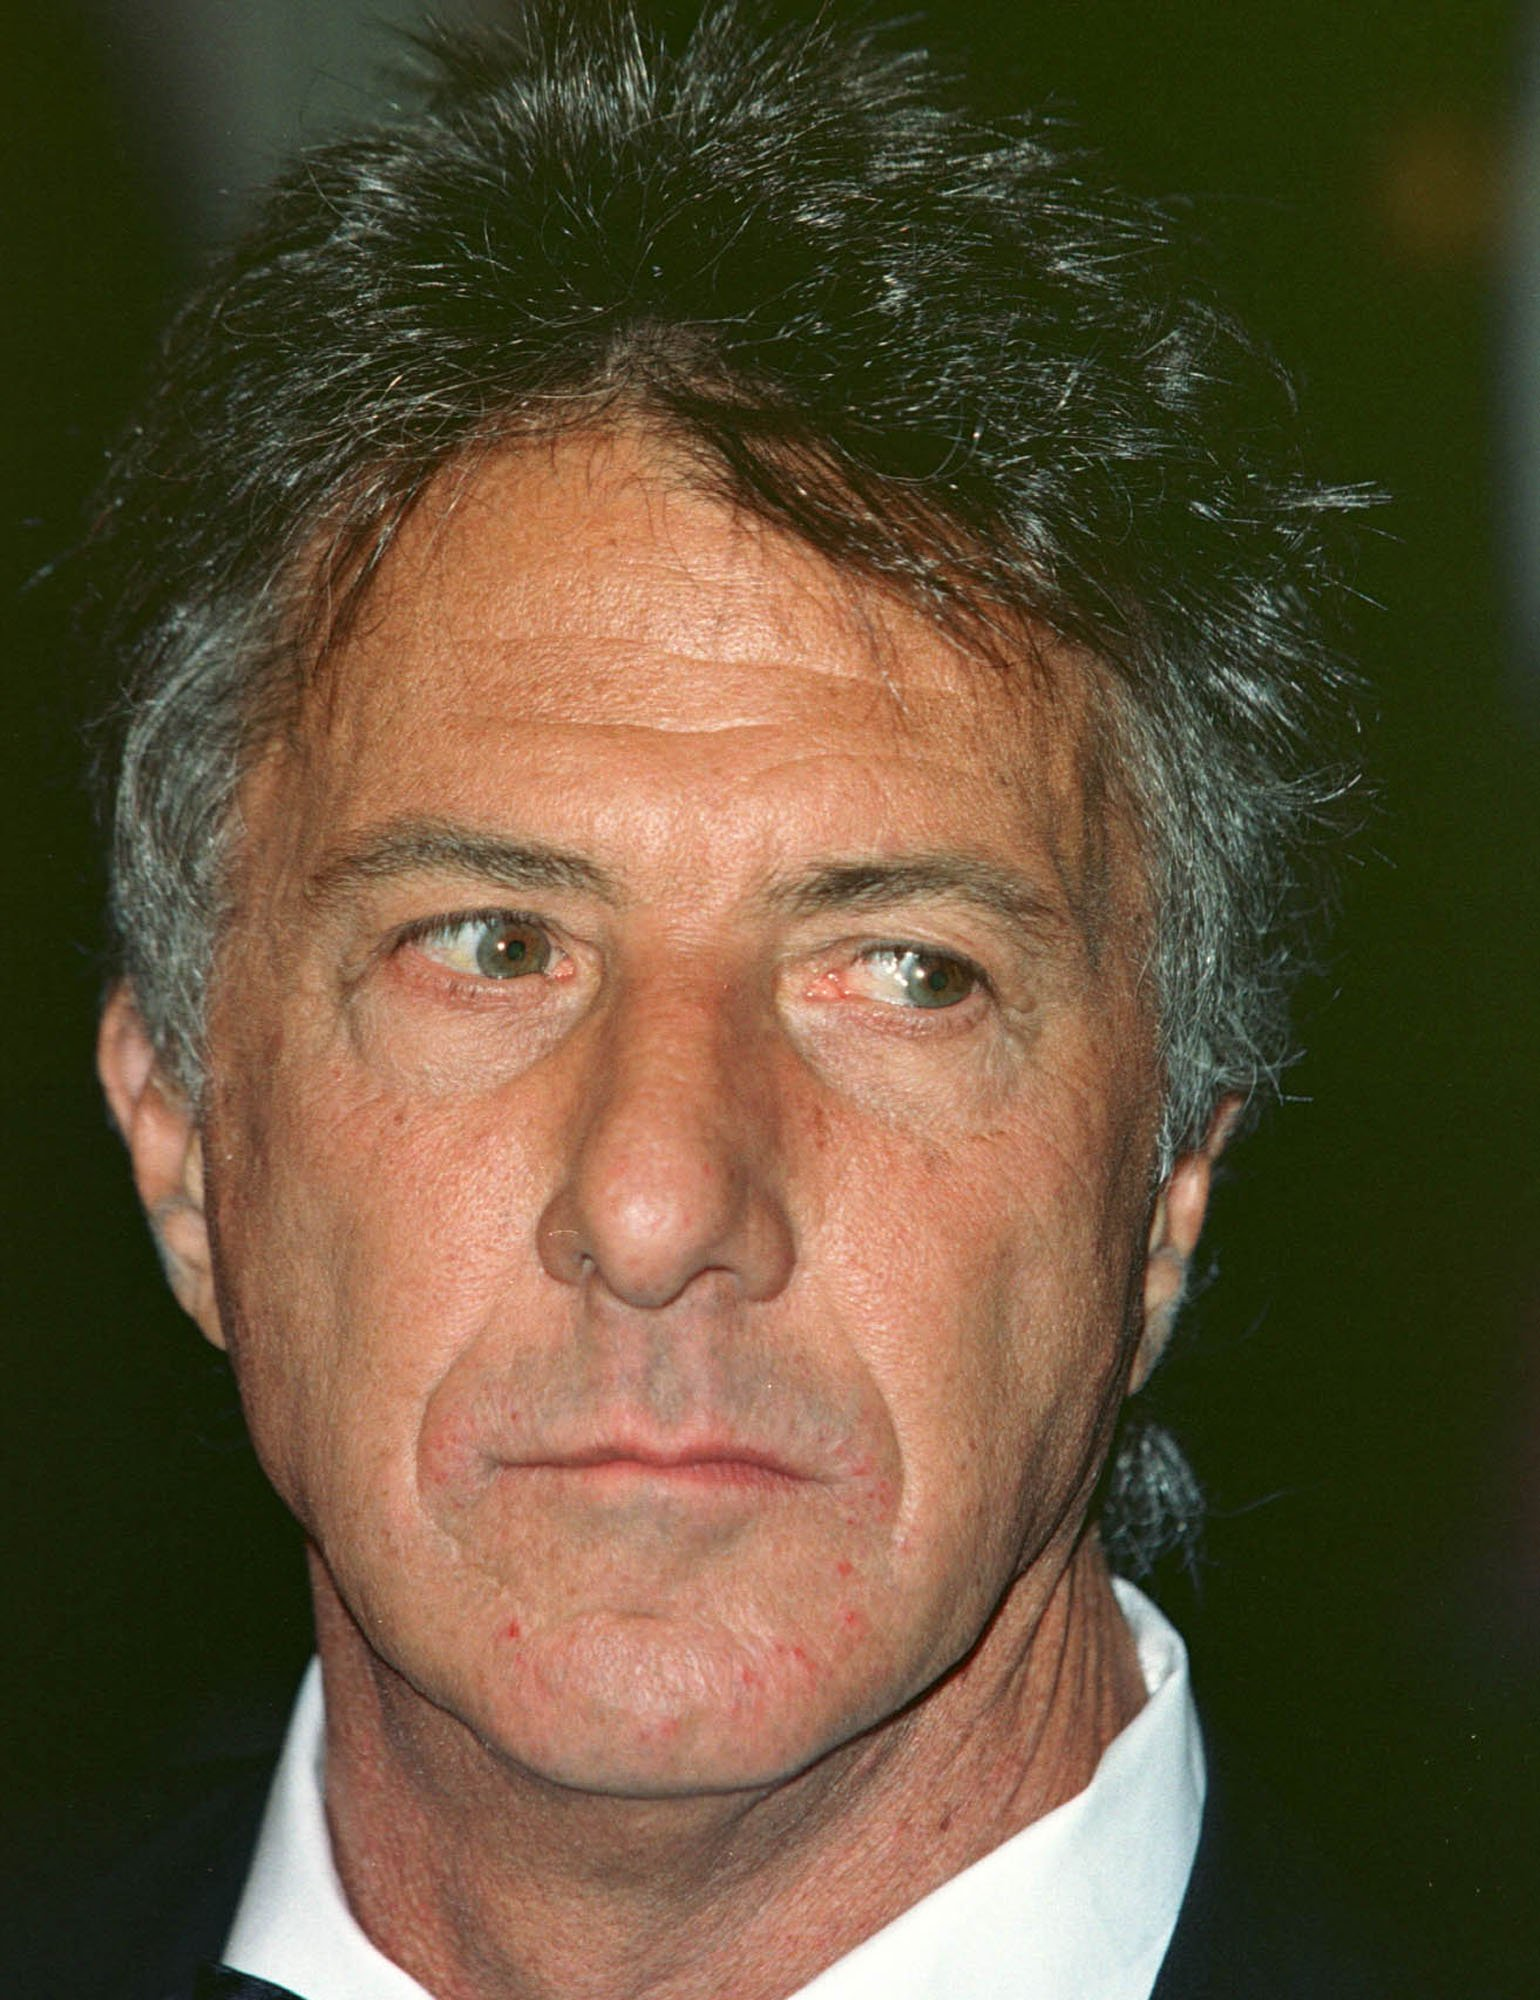 Dustin Hoffman. I Image: Getty Images.